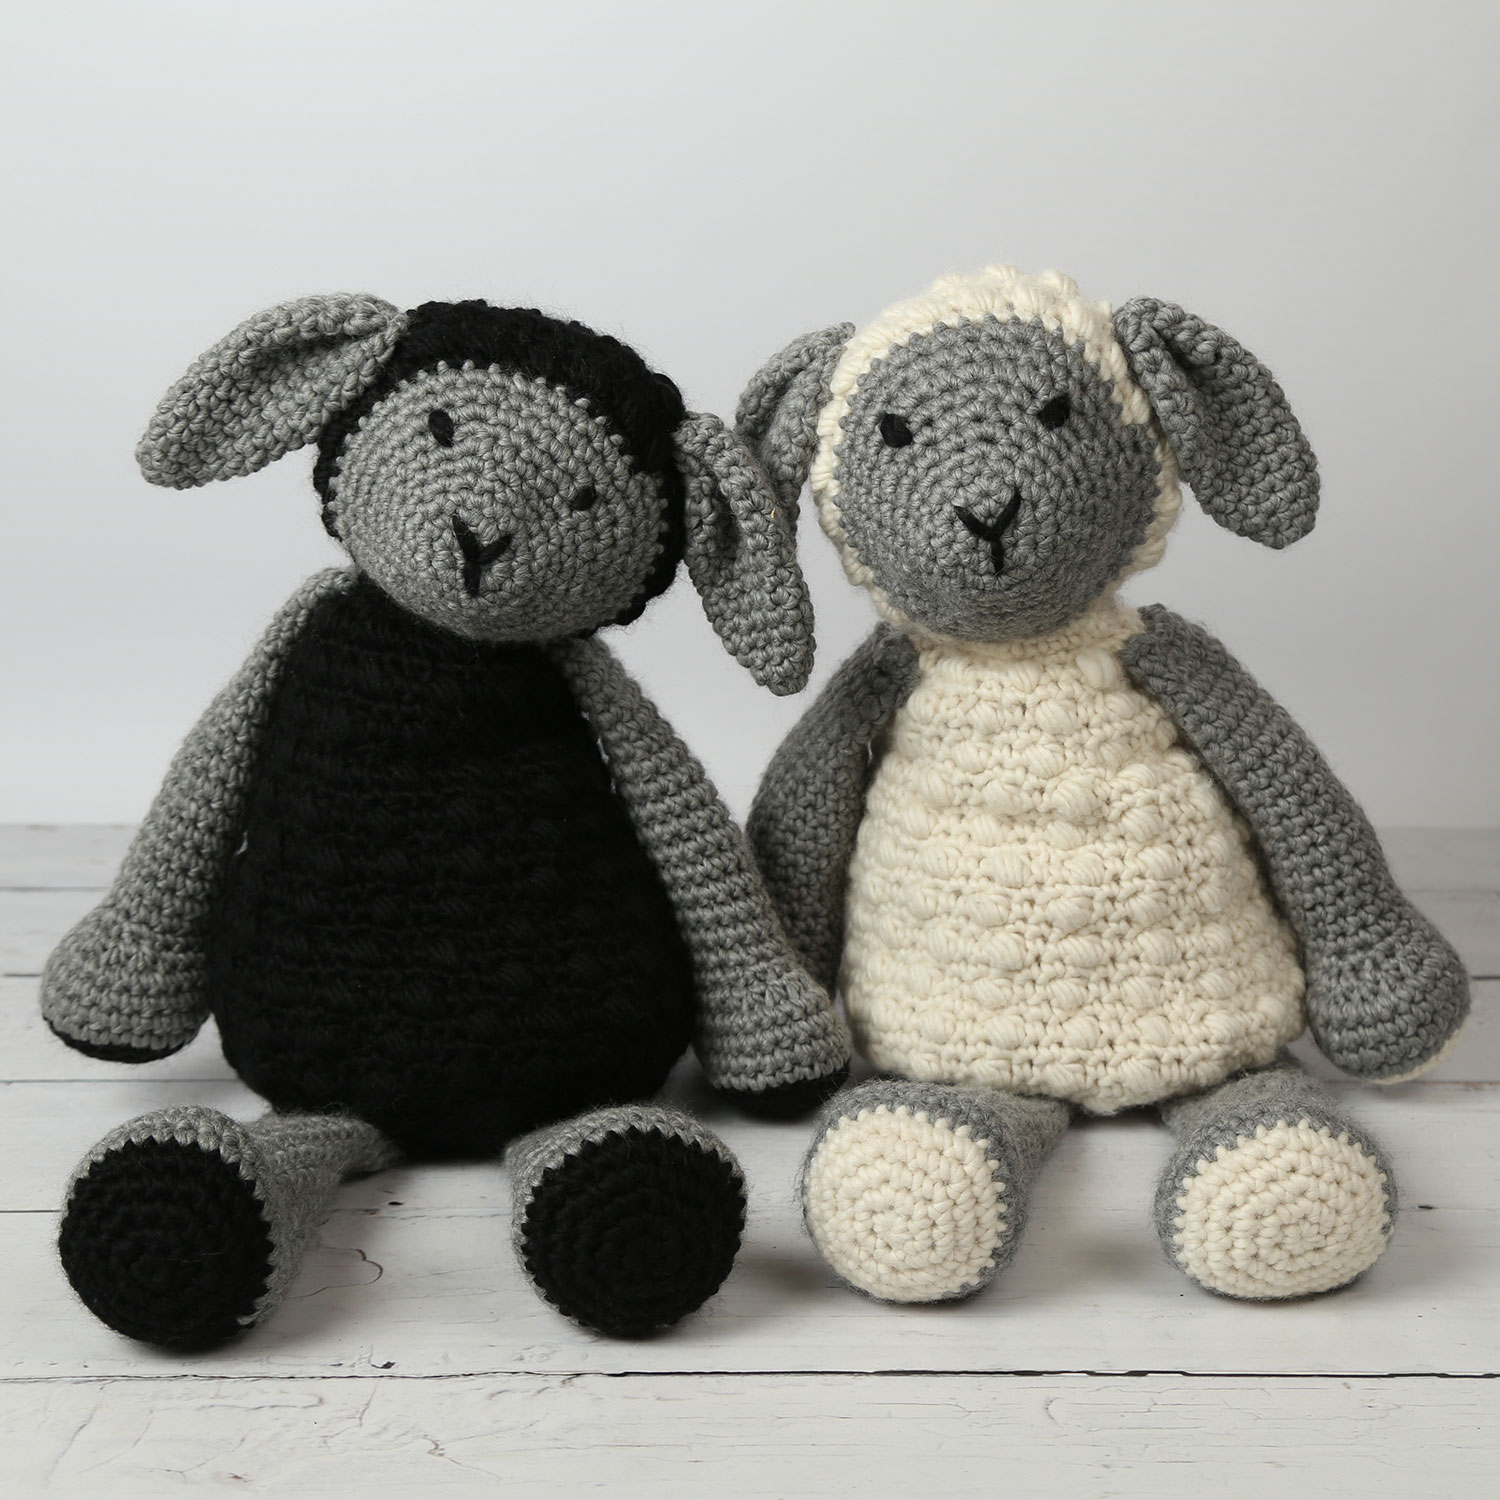 The Sweetest Crochet Lamb Patterns for Free Mabel Bunny Book Lionel Lamb Crochet Kit Wool Couture